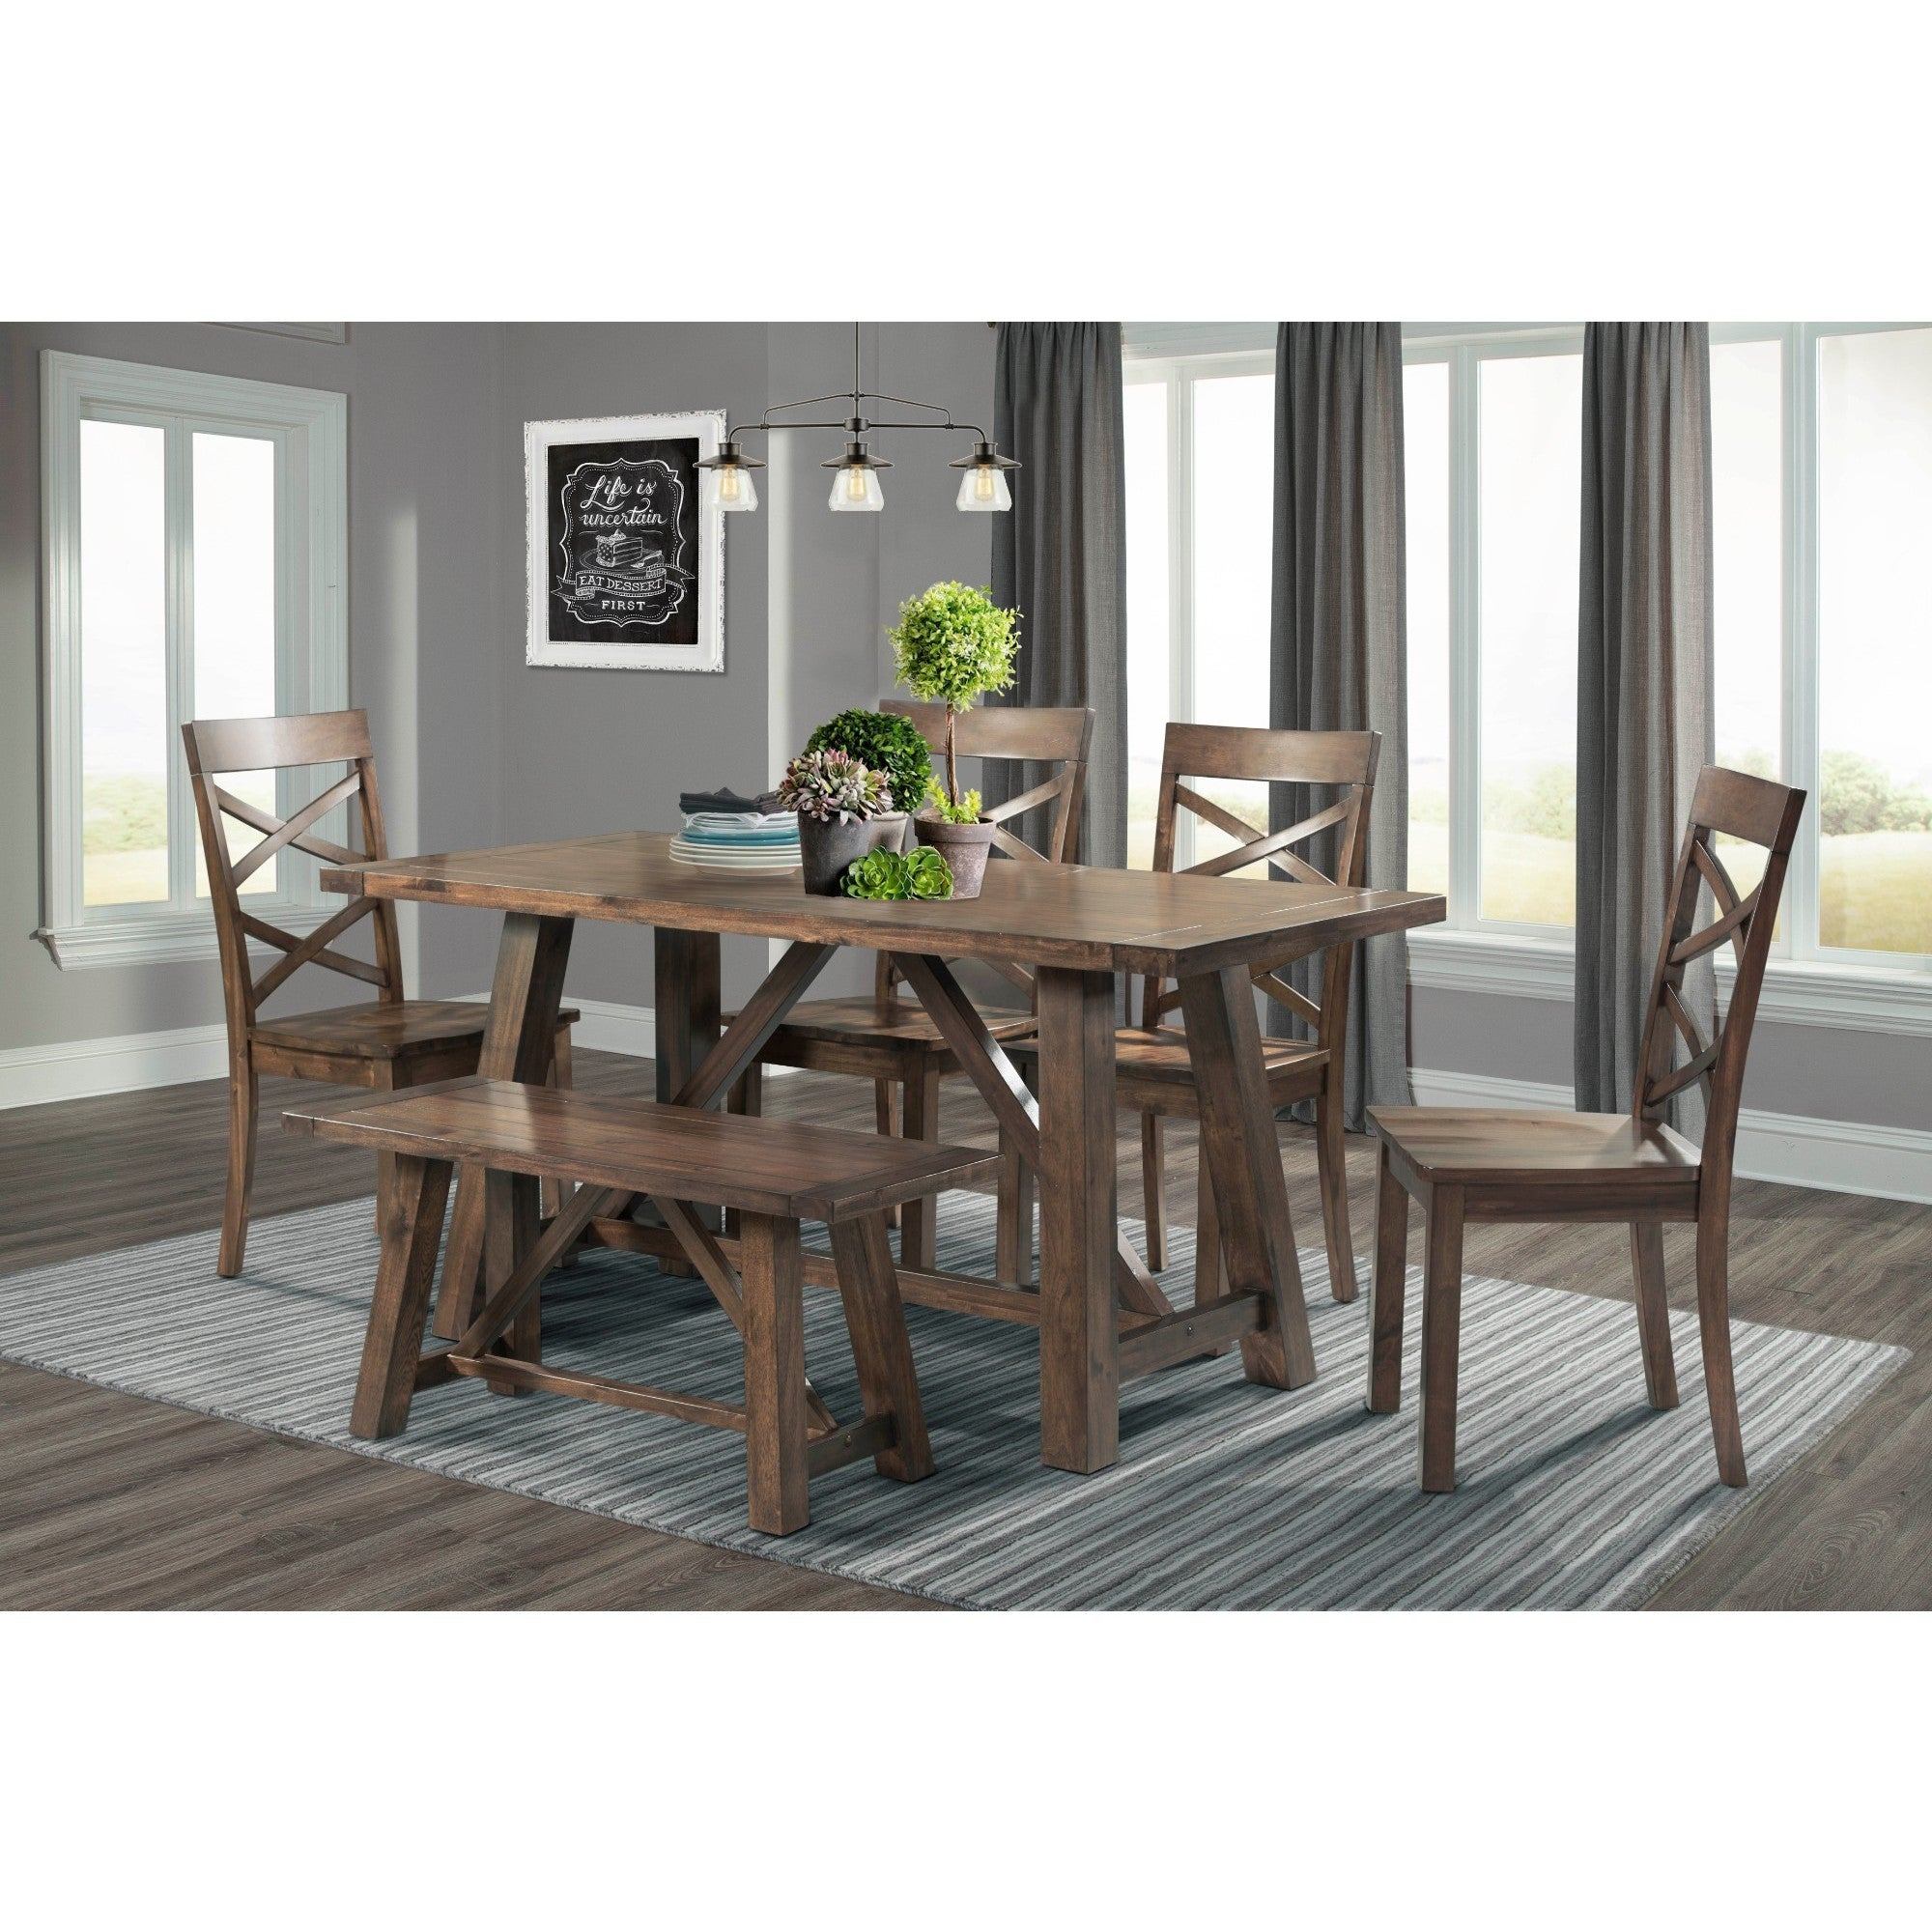 Cool Picket House Furnishings Regan 6Pc Dining Set Table 4 Dining Chairs Dining Bench Creativecarmelina Interior Chair Design Creativecarmelinacom